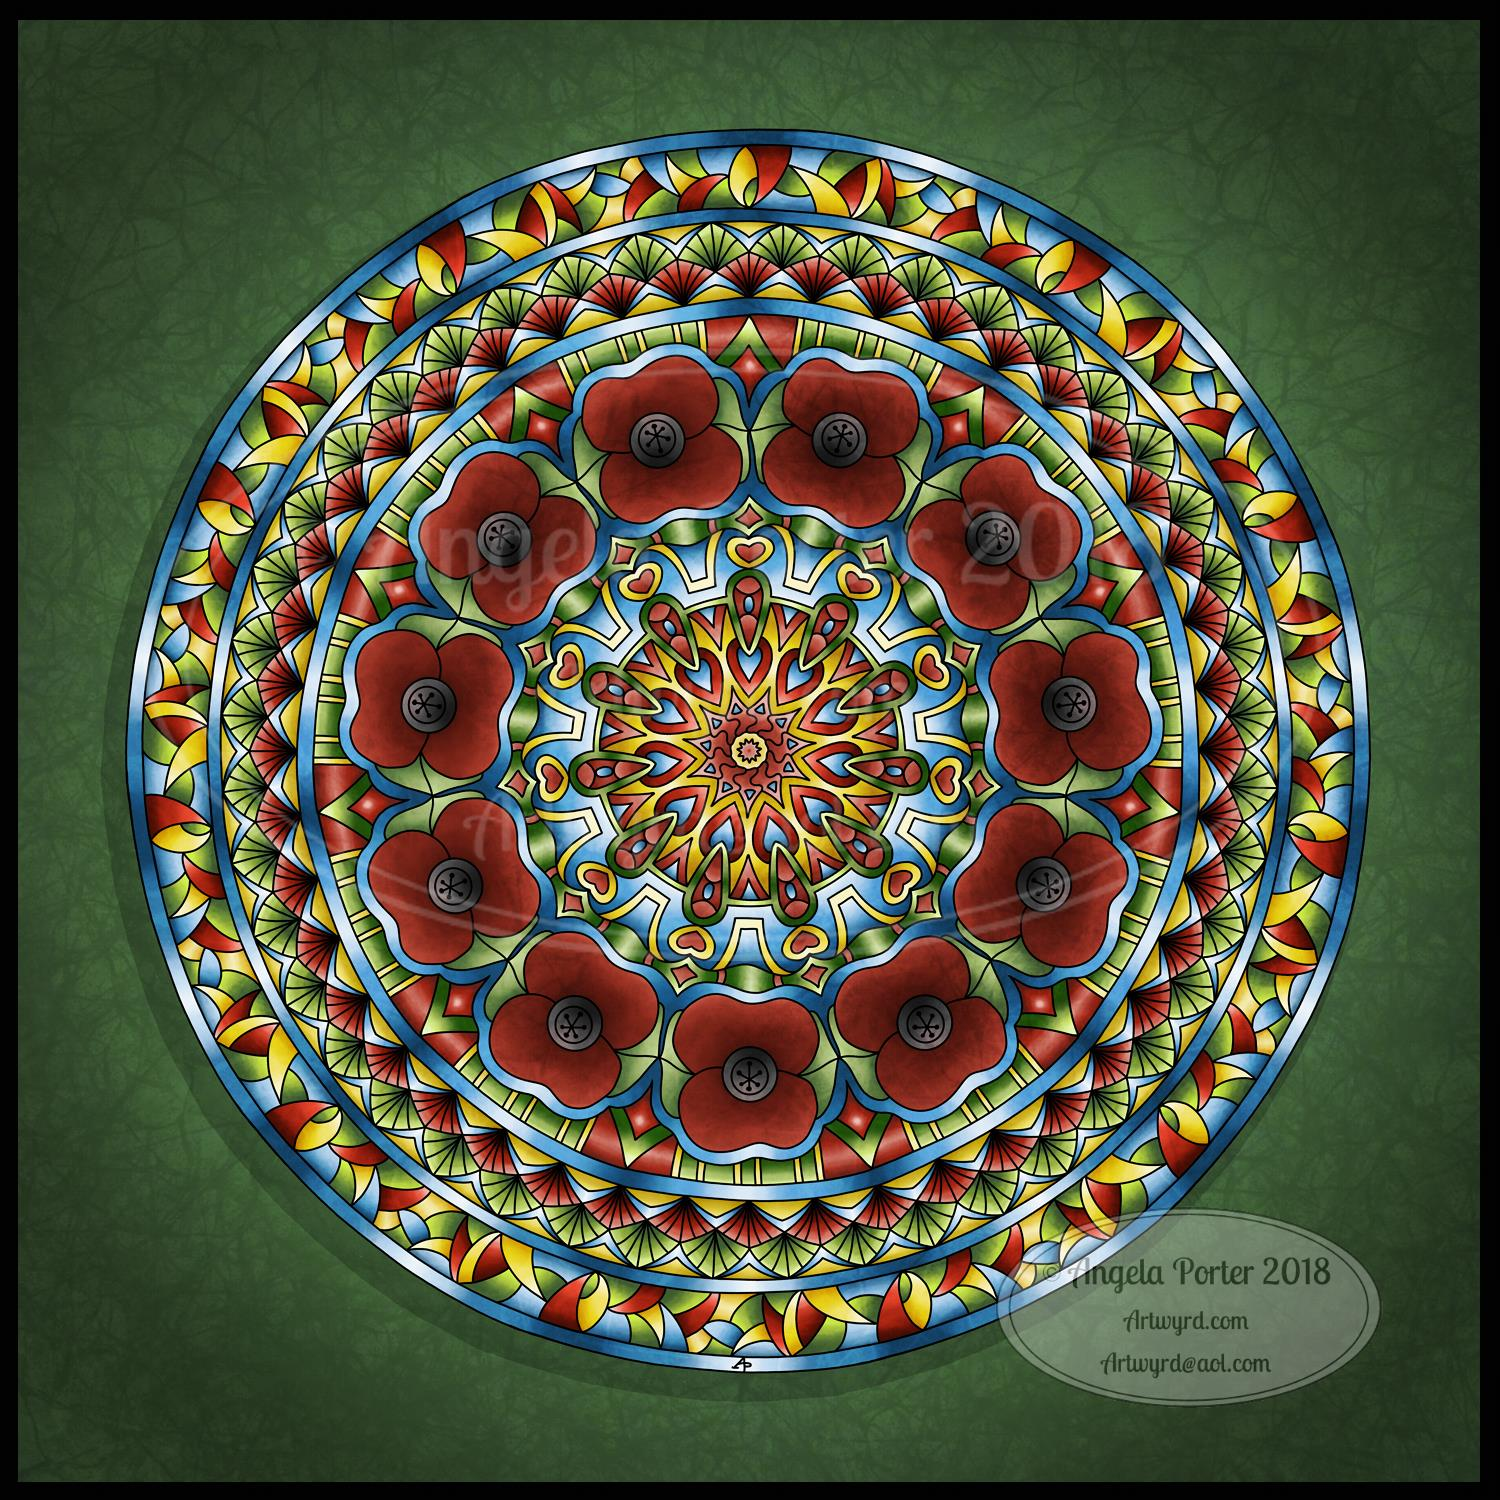 Angela Porter Remembrance Mandala 2018